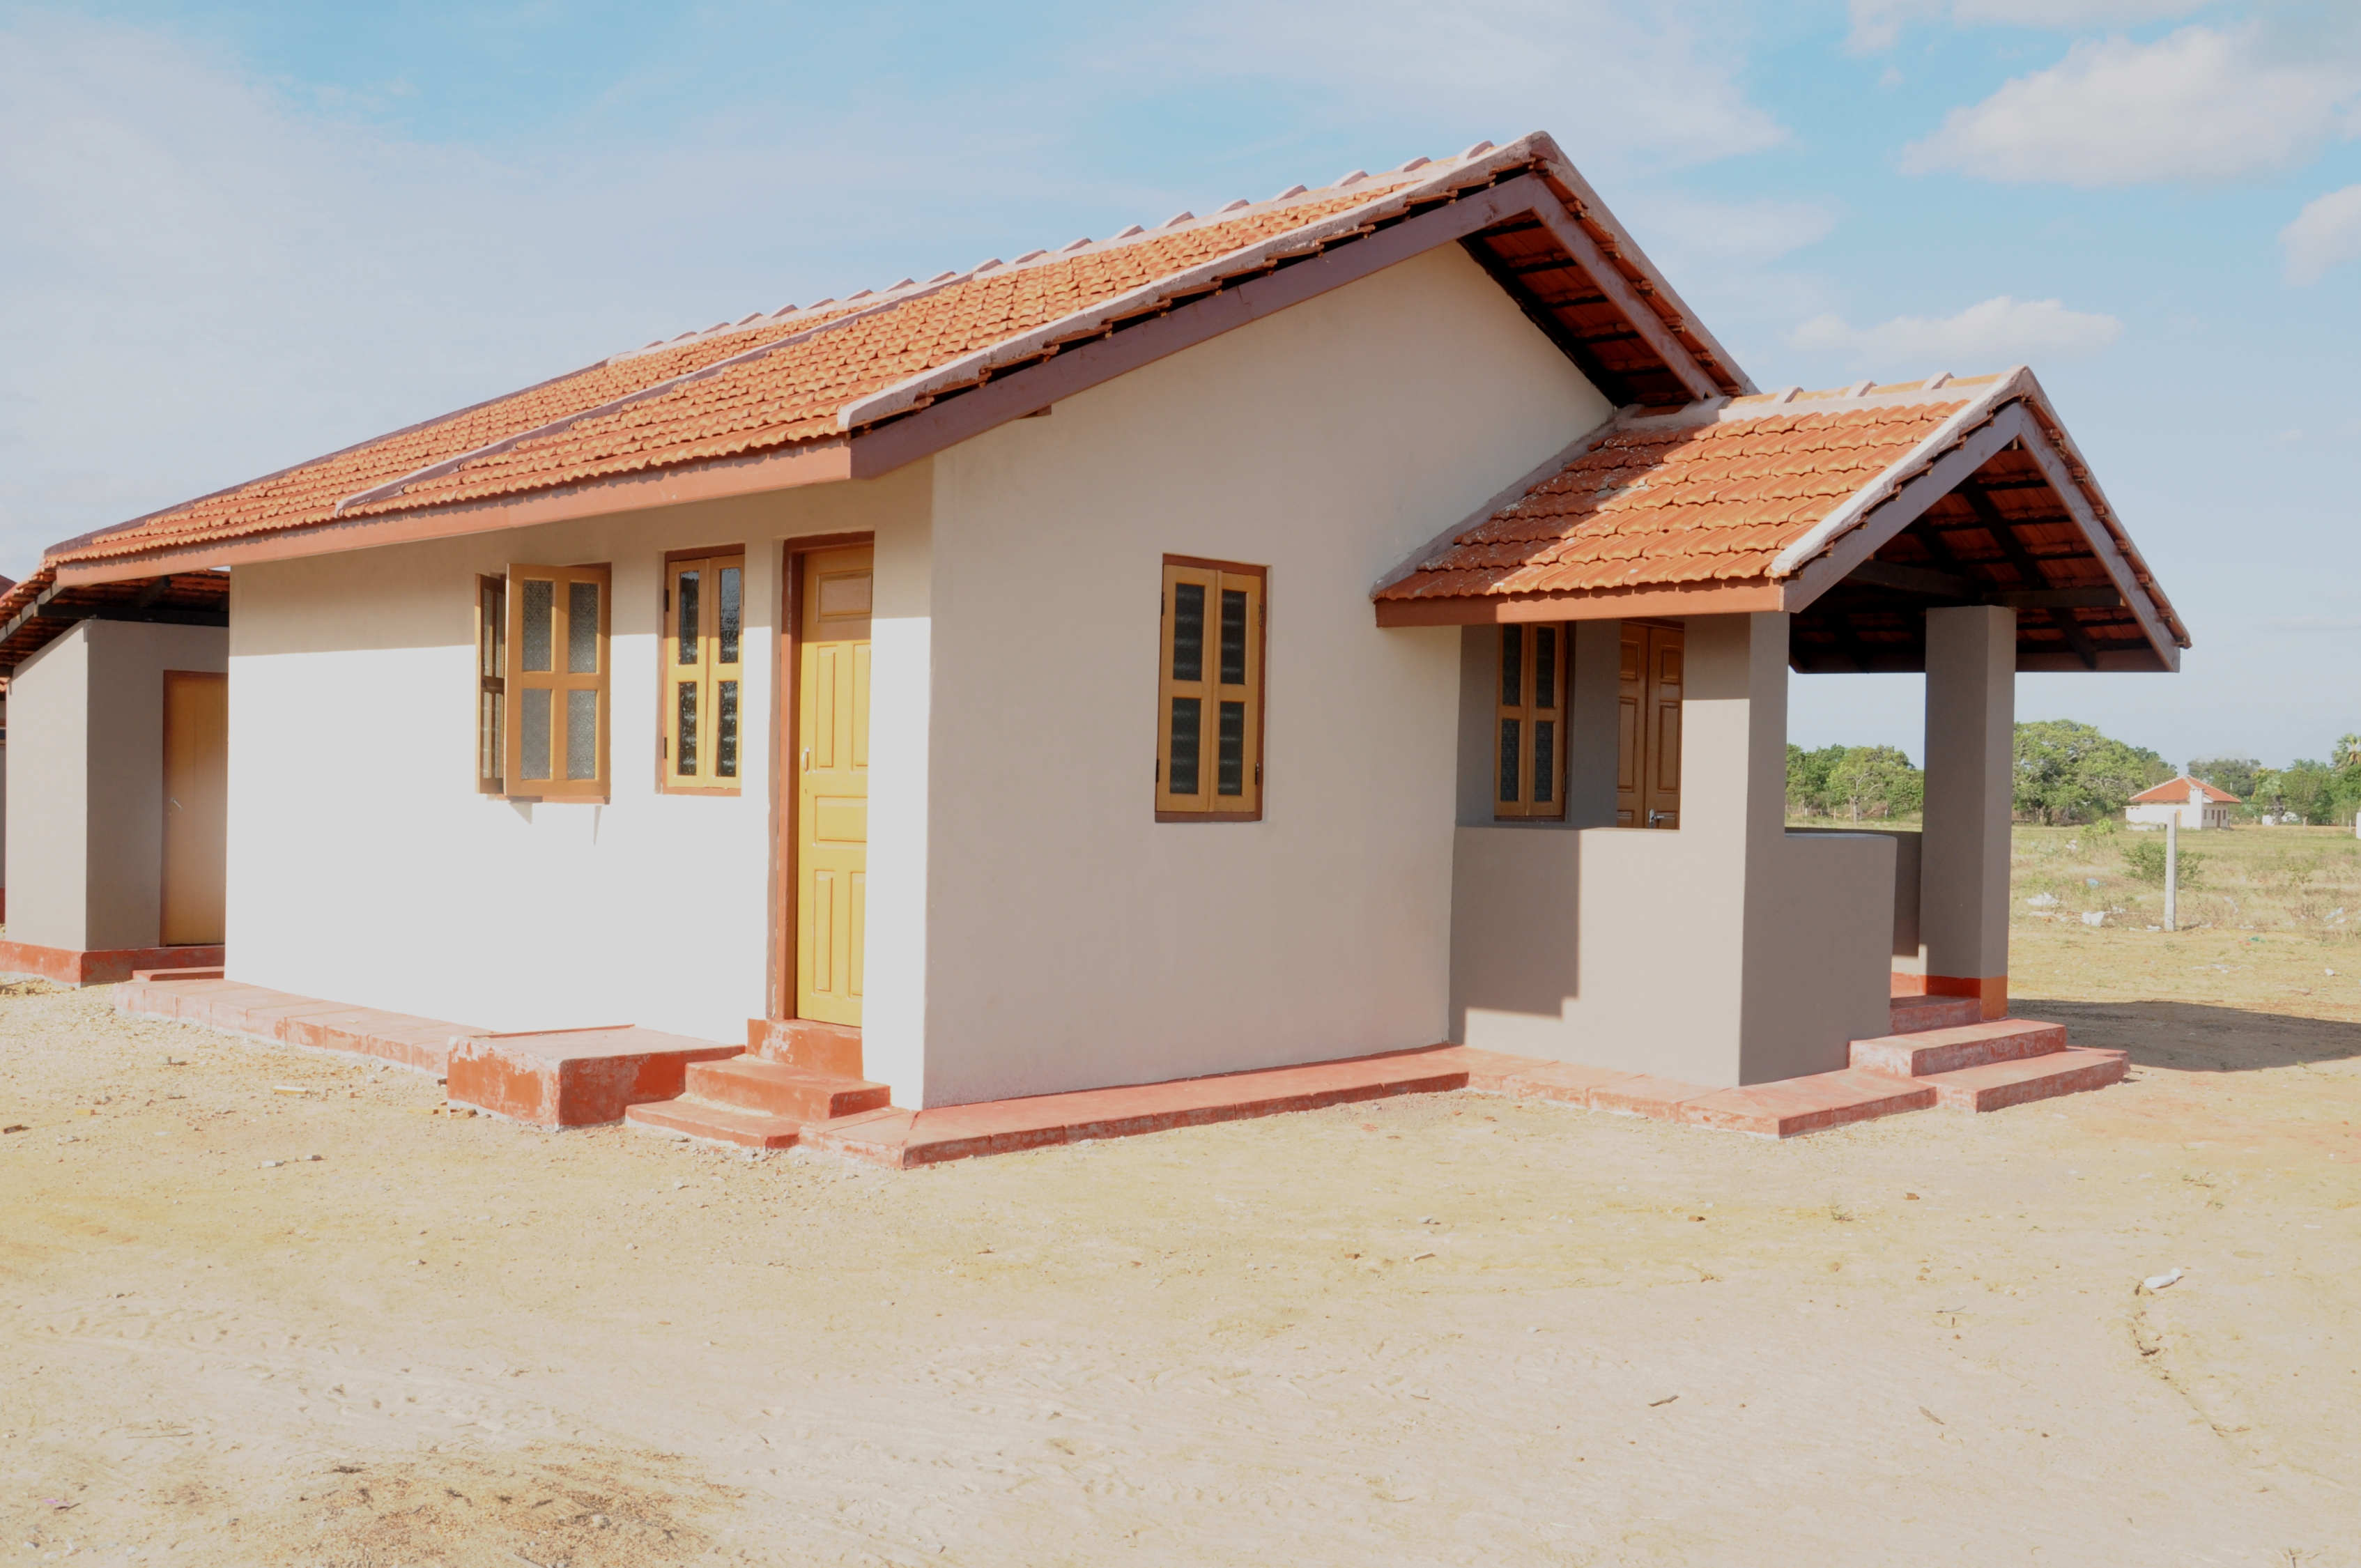 New Indian government subdidized housing in Ariviyal Nagar, Kilinochchi District